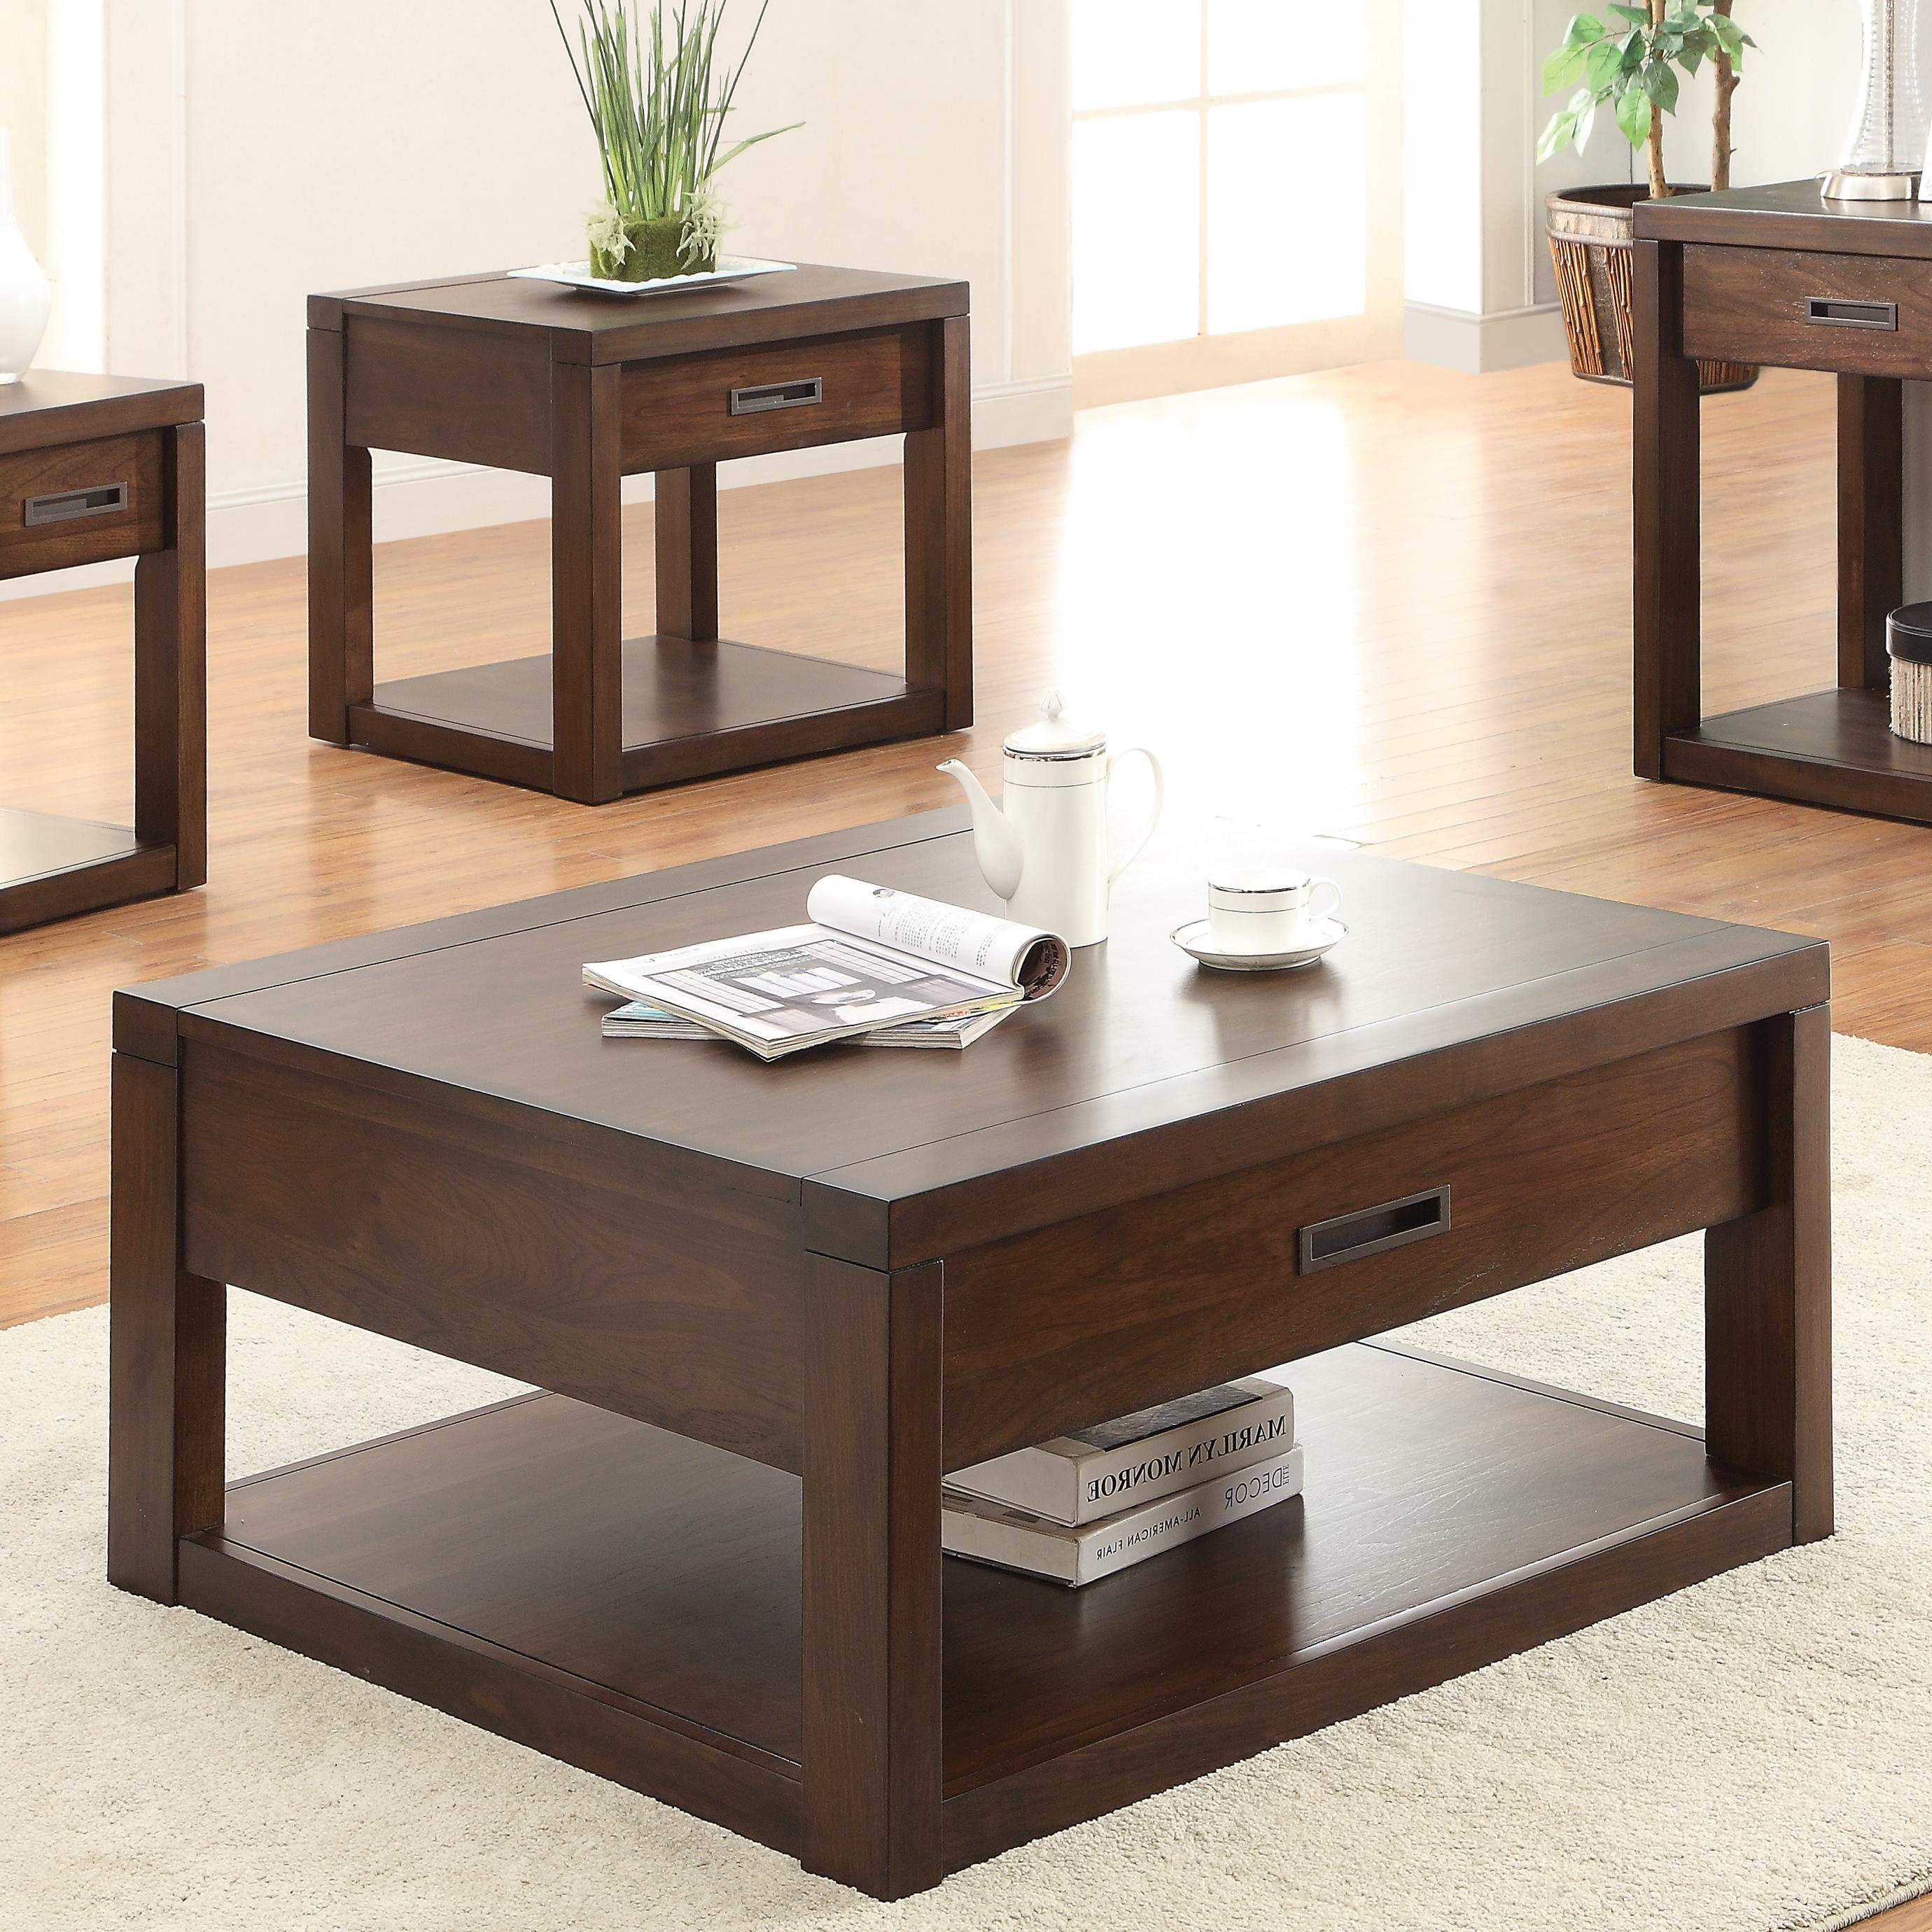 square cocktail table w